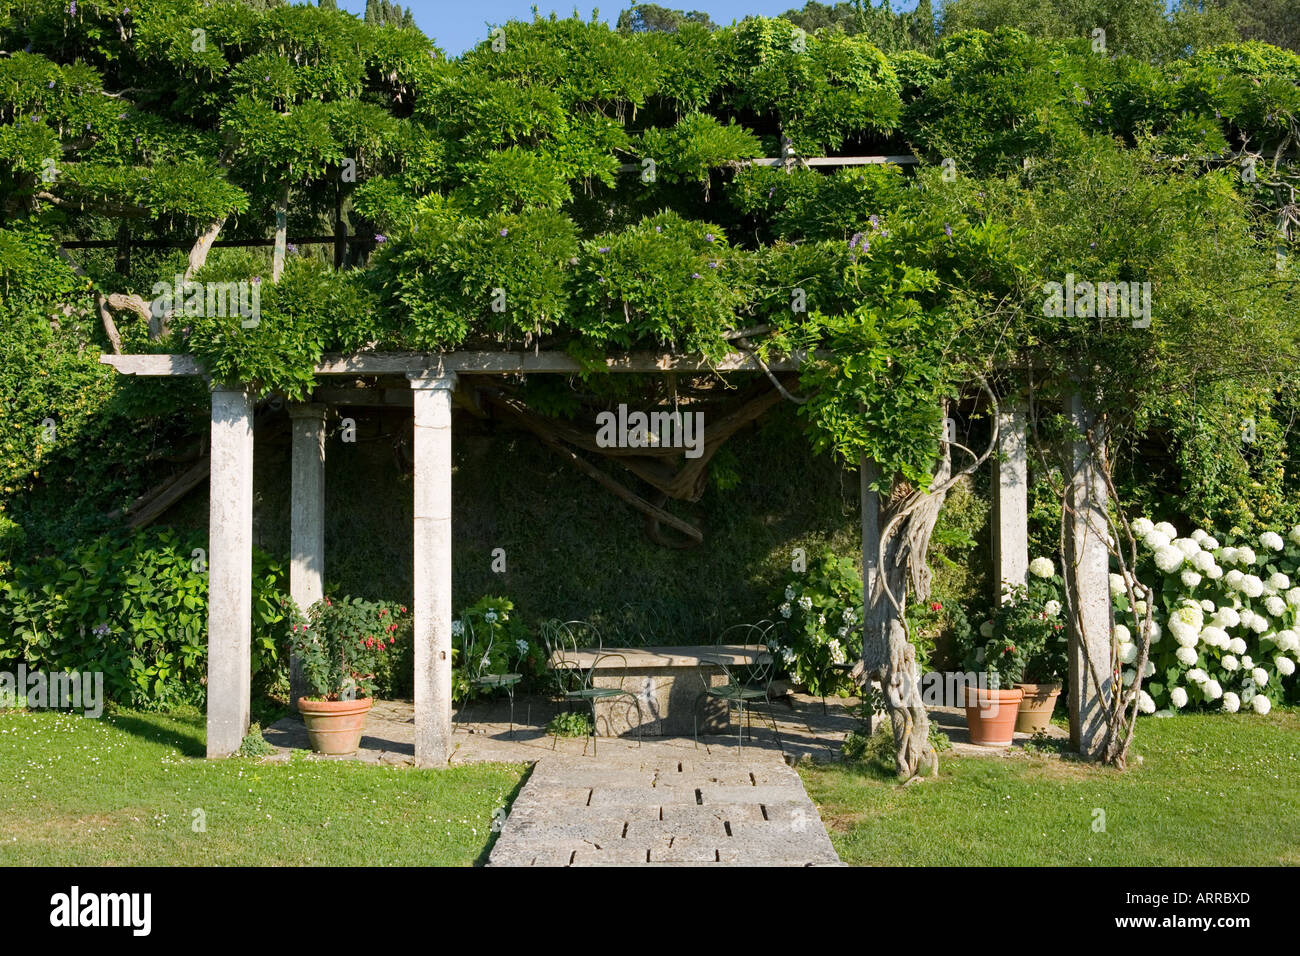 Pergola Glycine Glycine Pergola Cheap Glycines Et Pergolas With Glycine